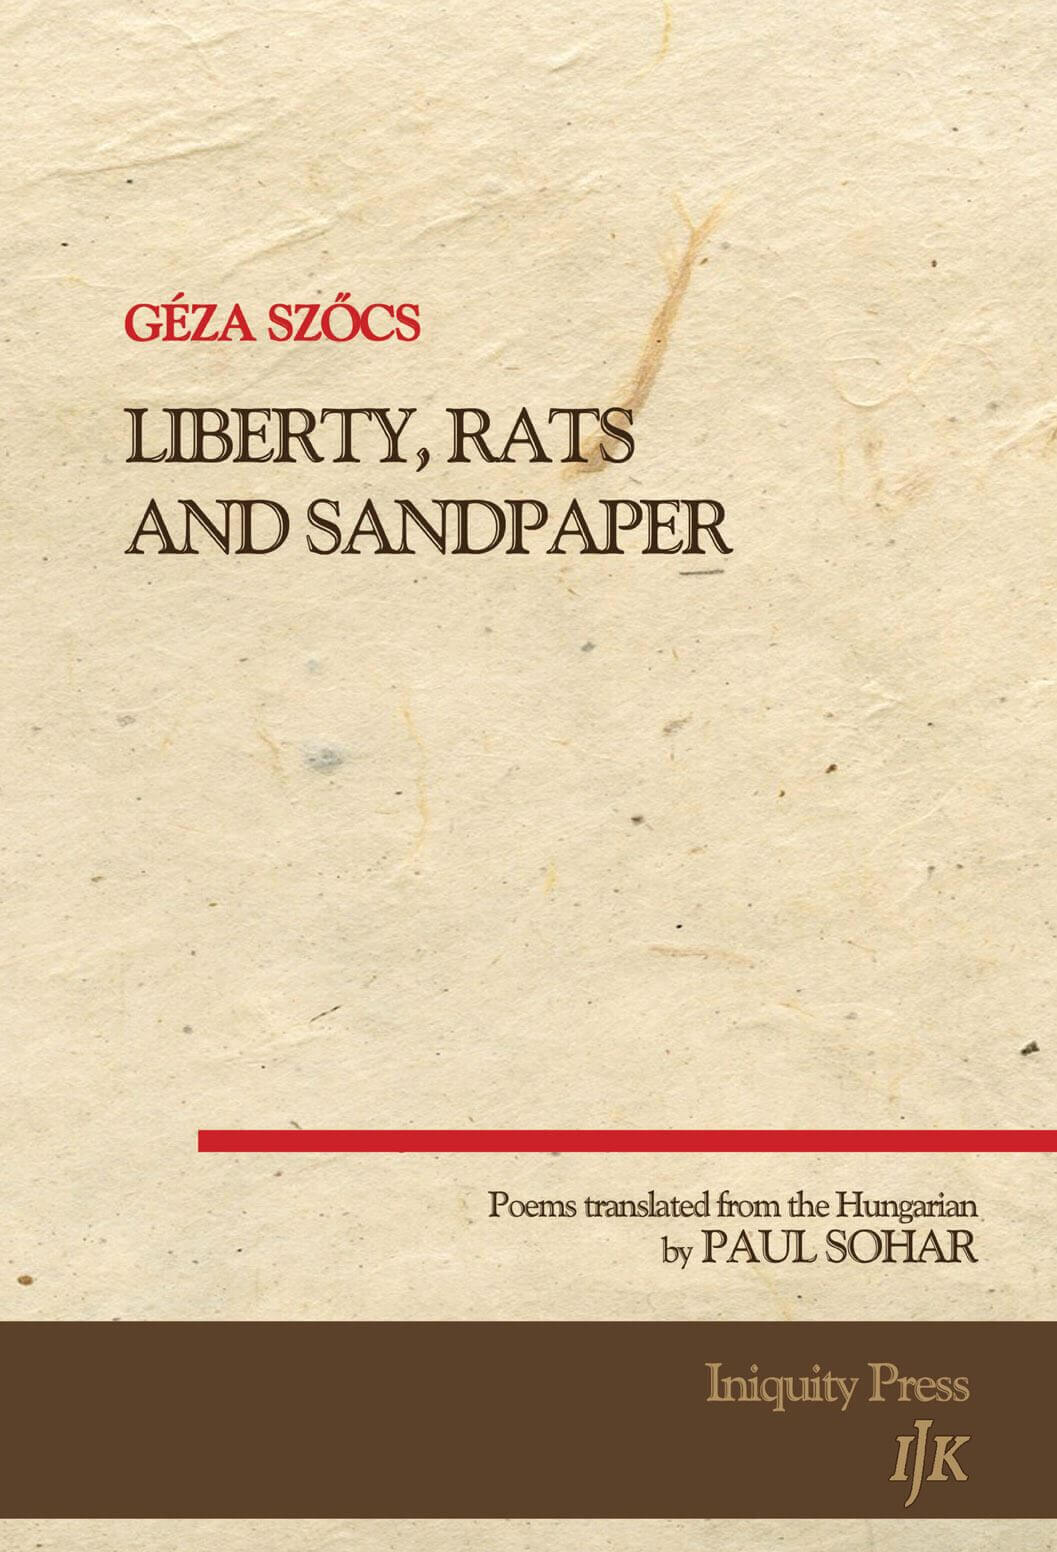 GÉZA SZŐCS: LIBERTY, RATS AND SANDPAPER